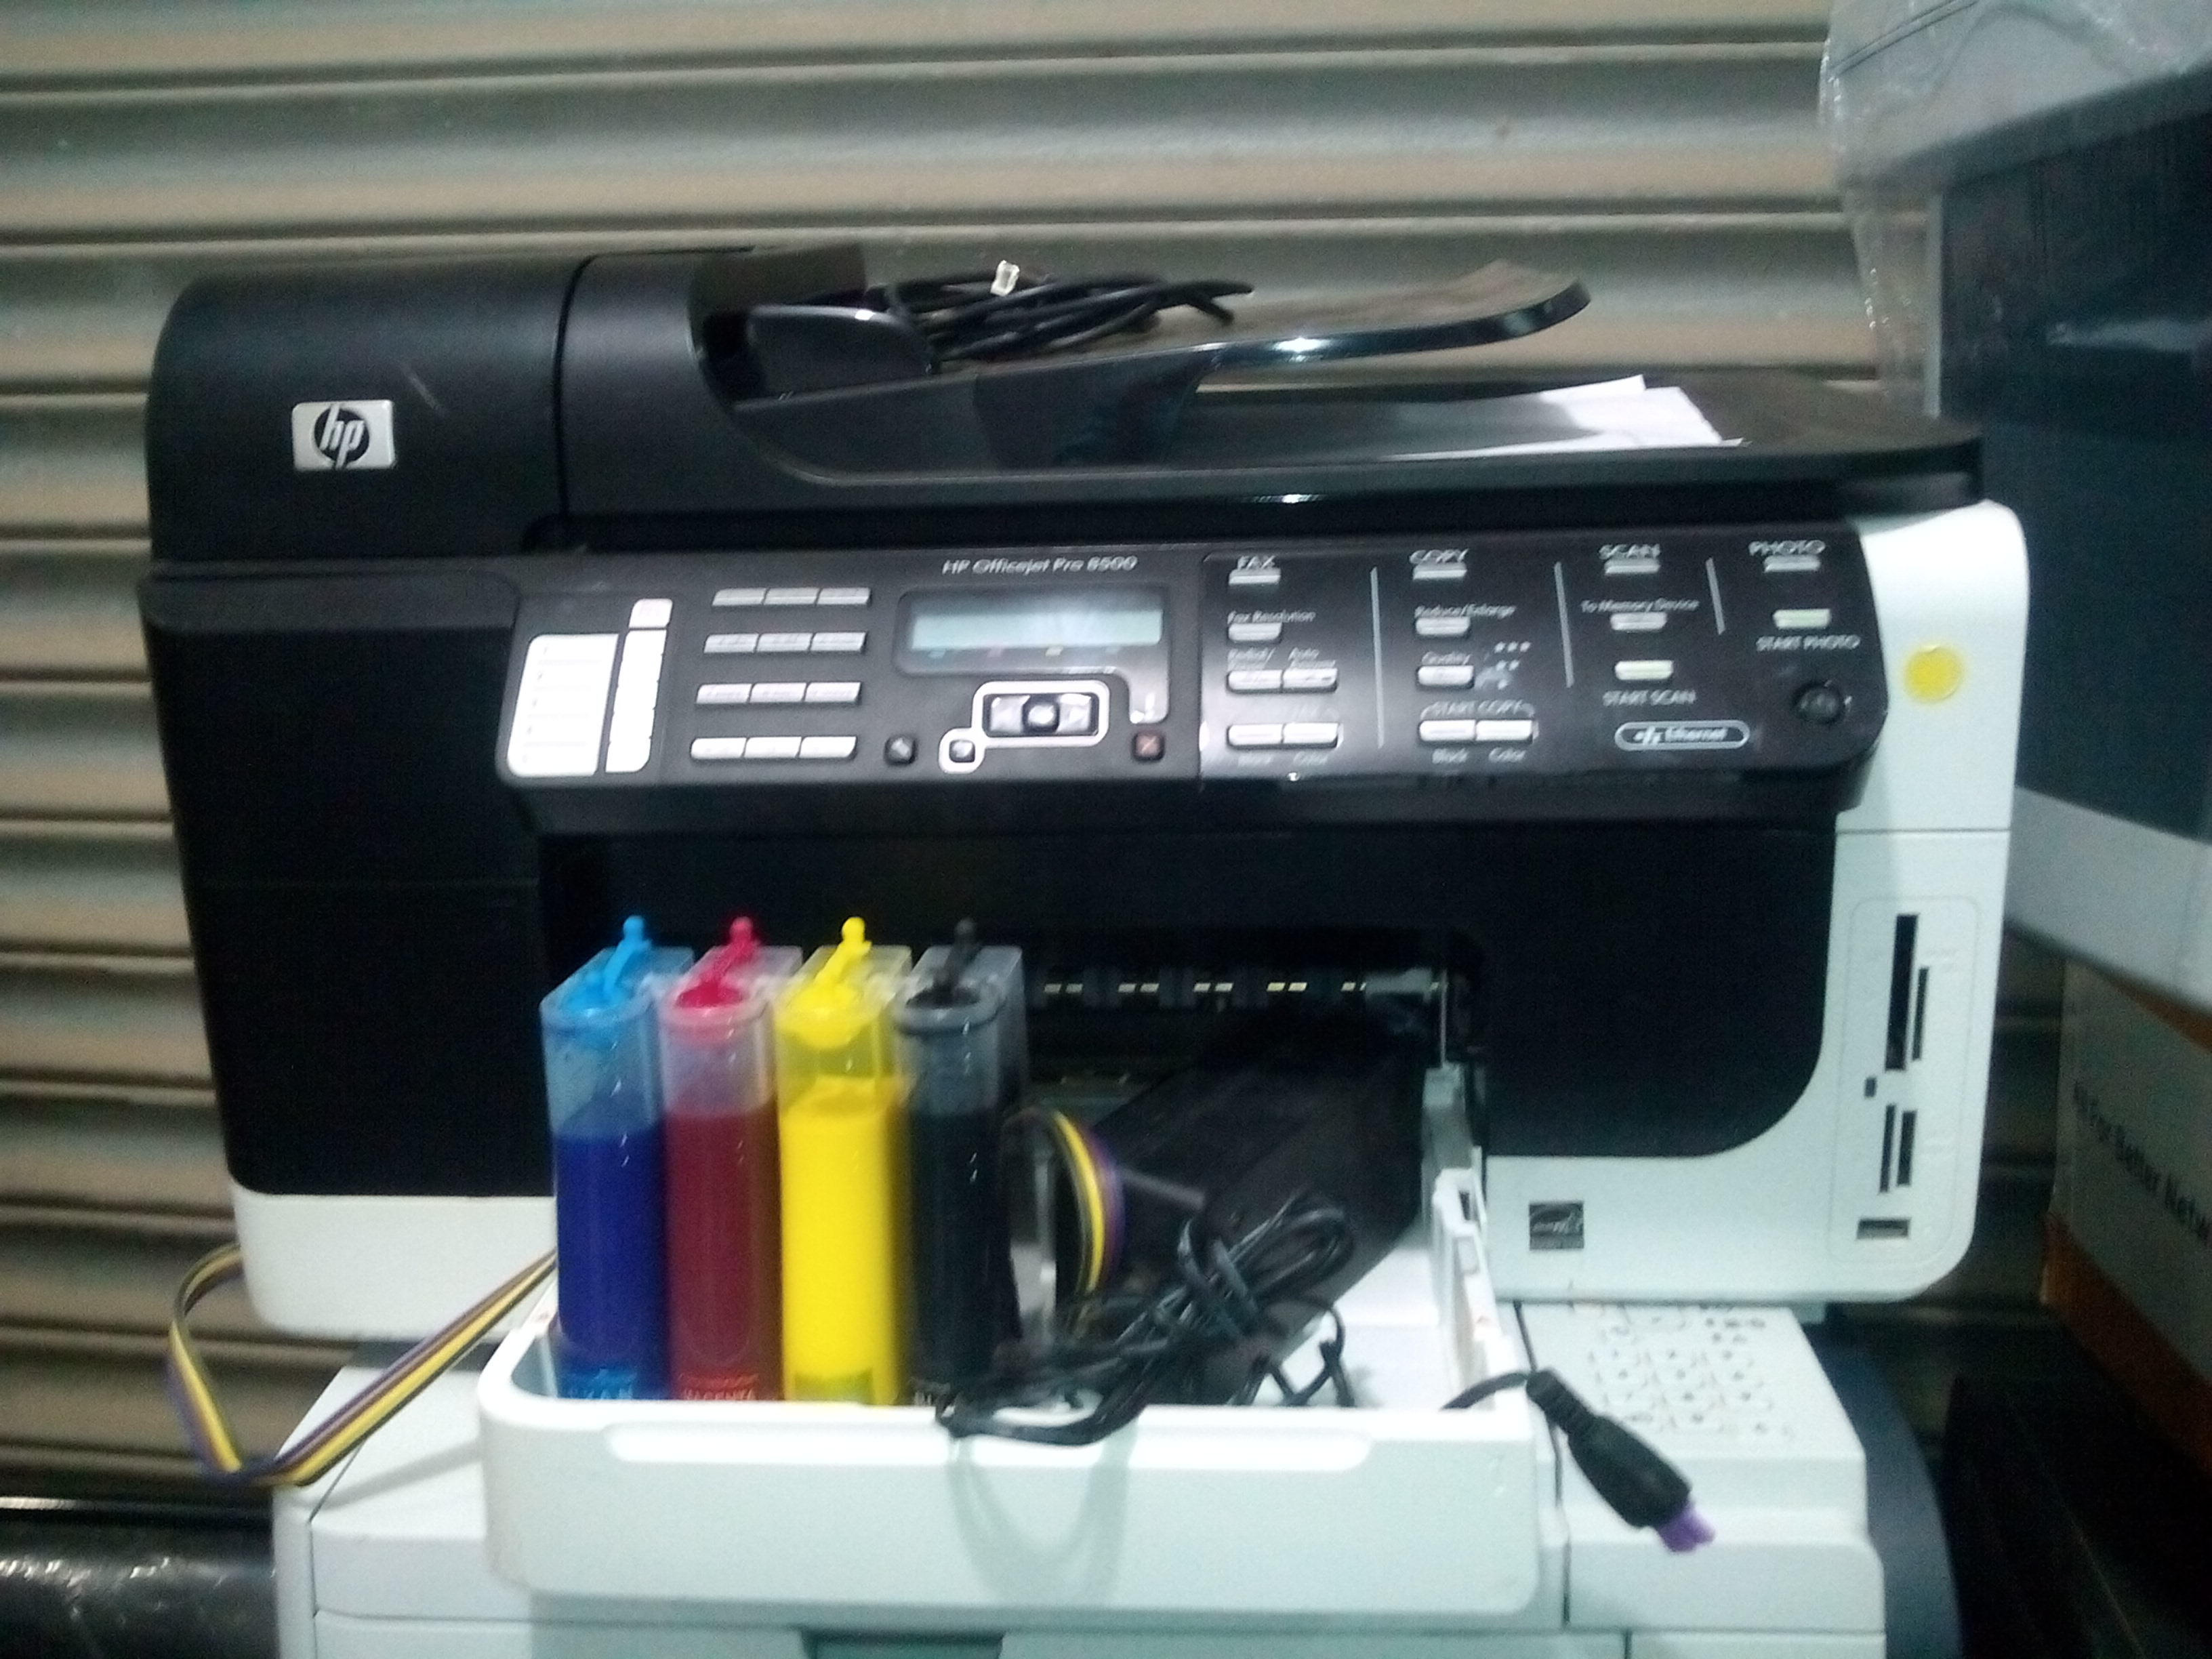 HP 8500 Officejet All in one printer with CISS KIT